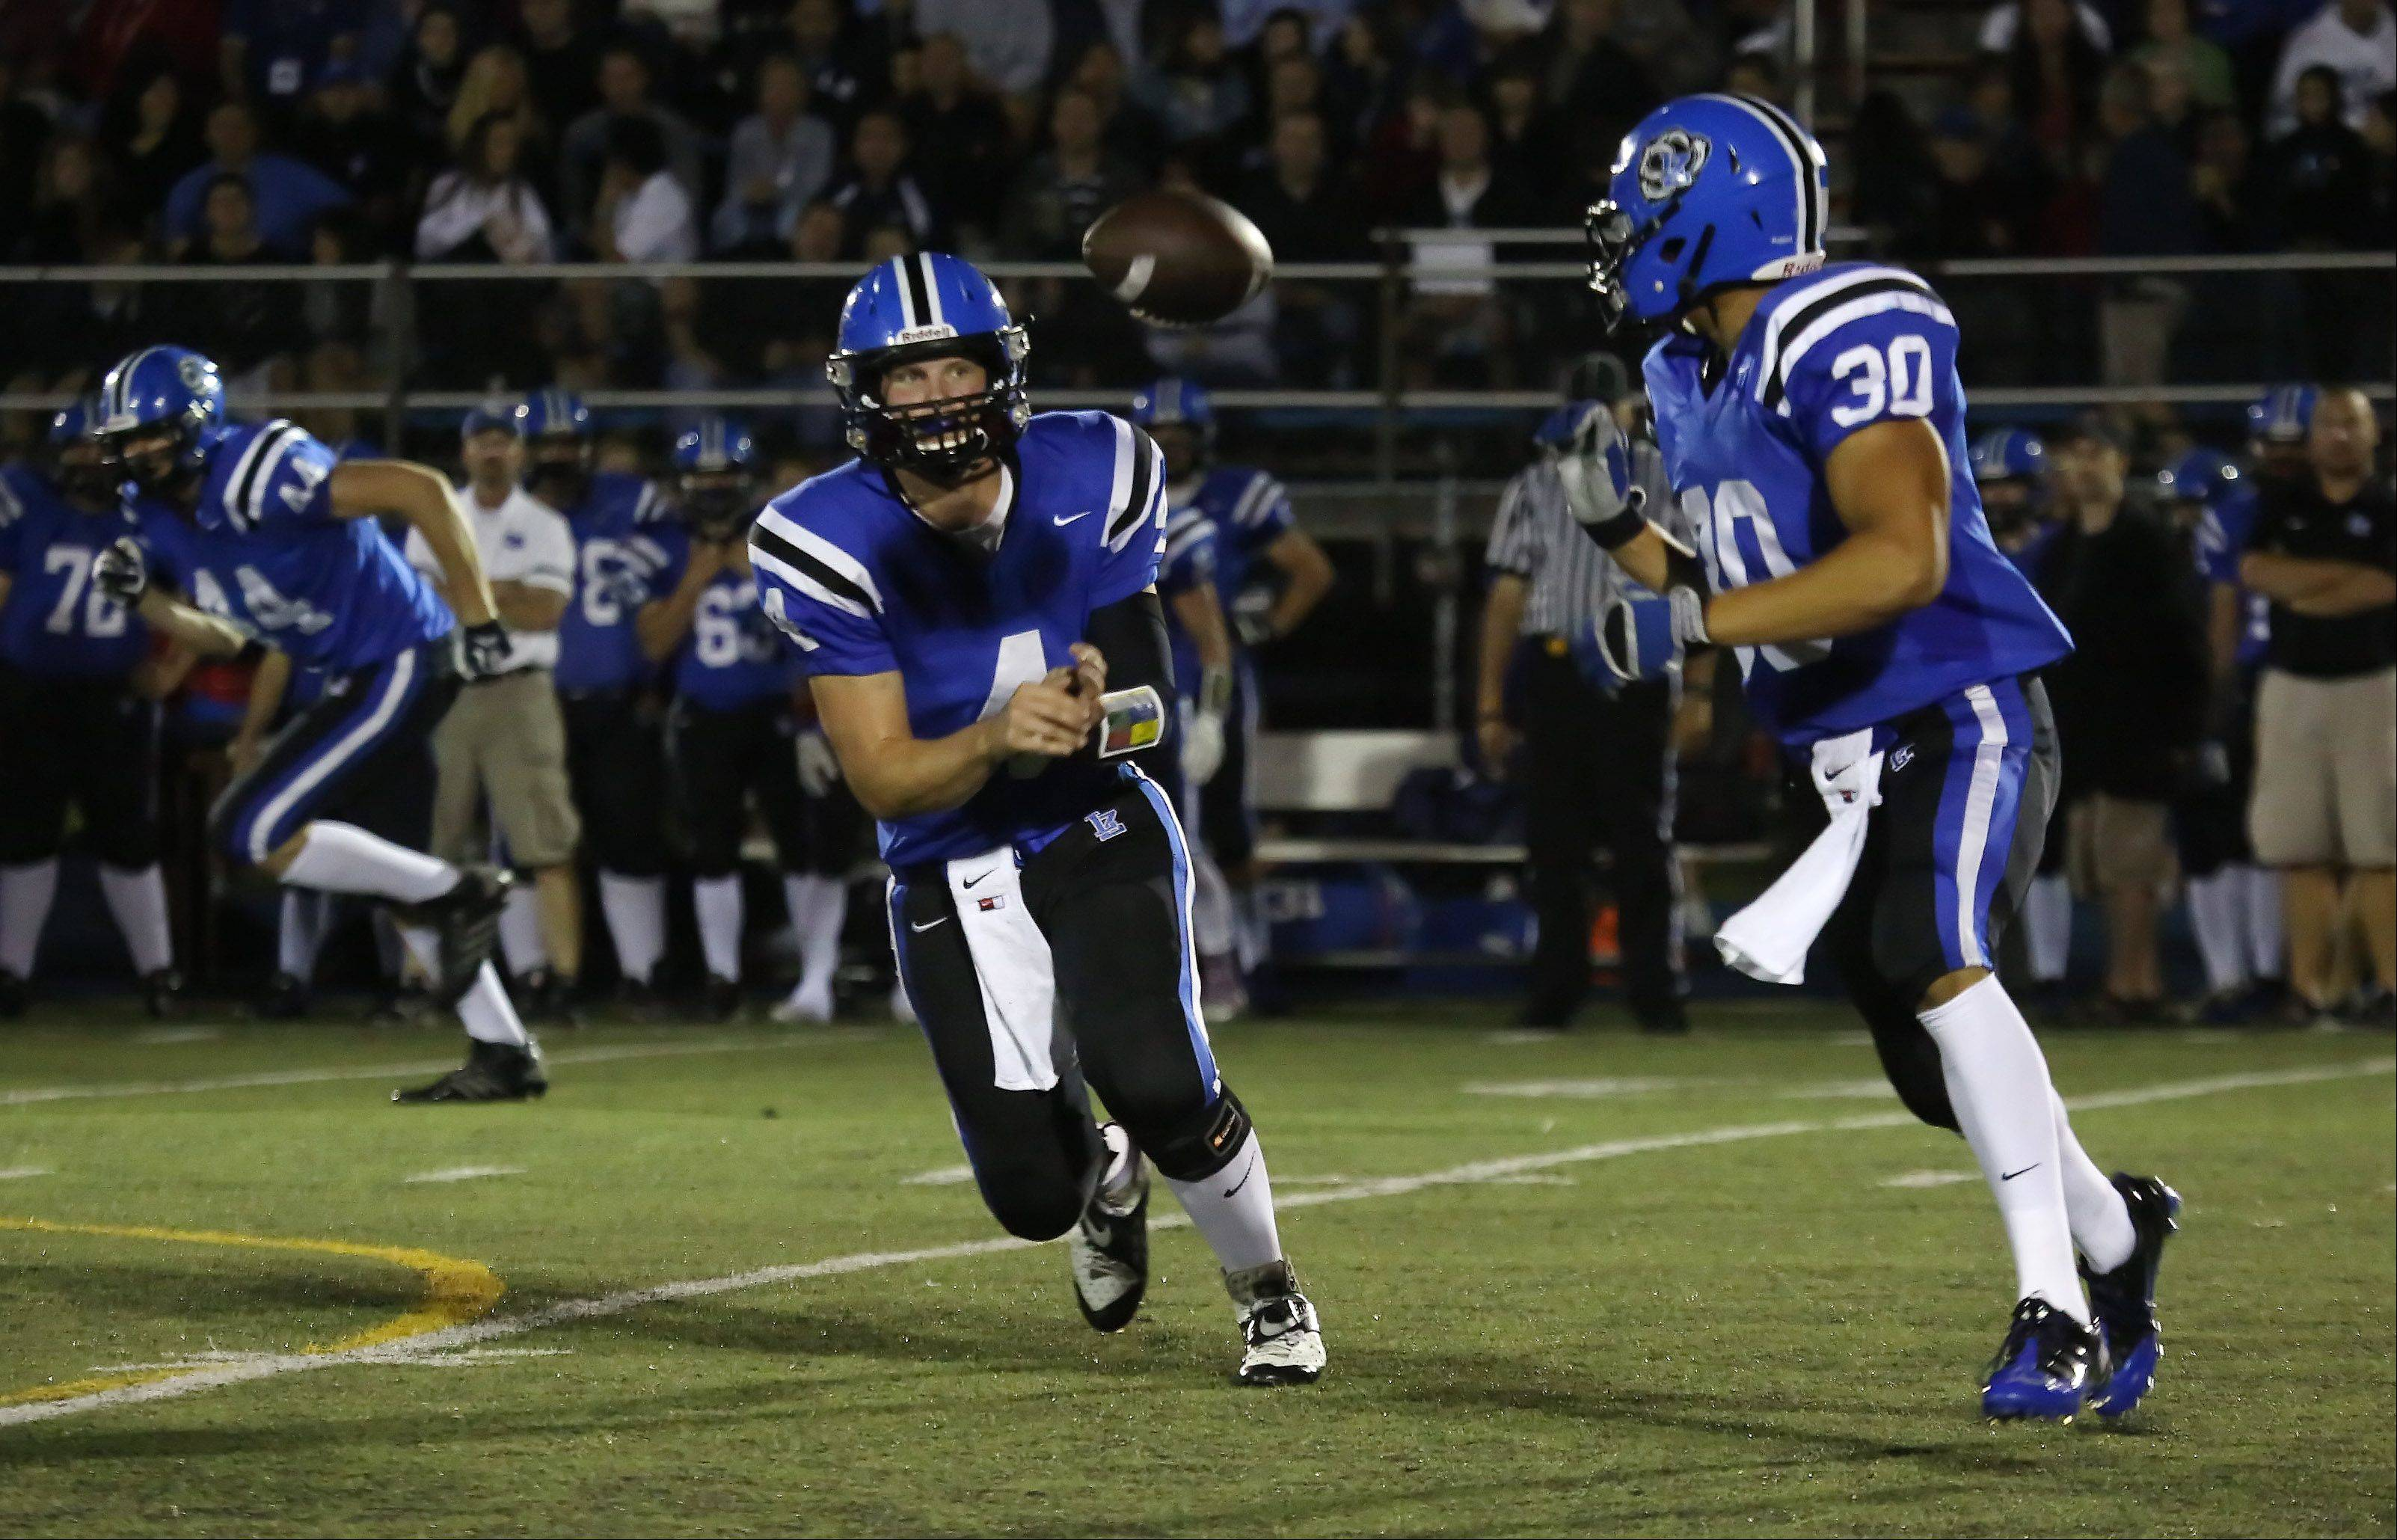 Lake Zurich quarterback Noah Allgood pitches out to running back Ben Klett against Warren on Thursday at Lake Zurich.